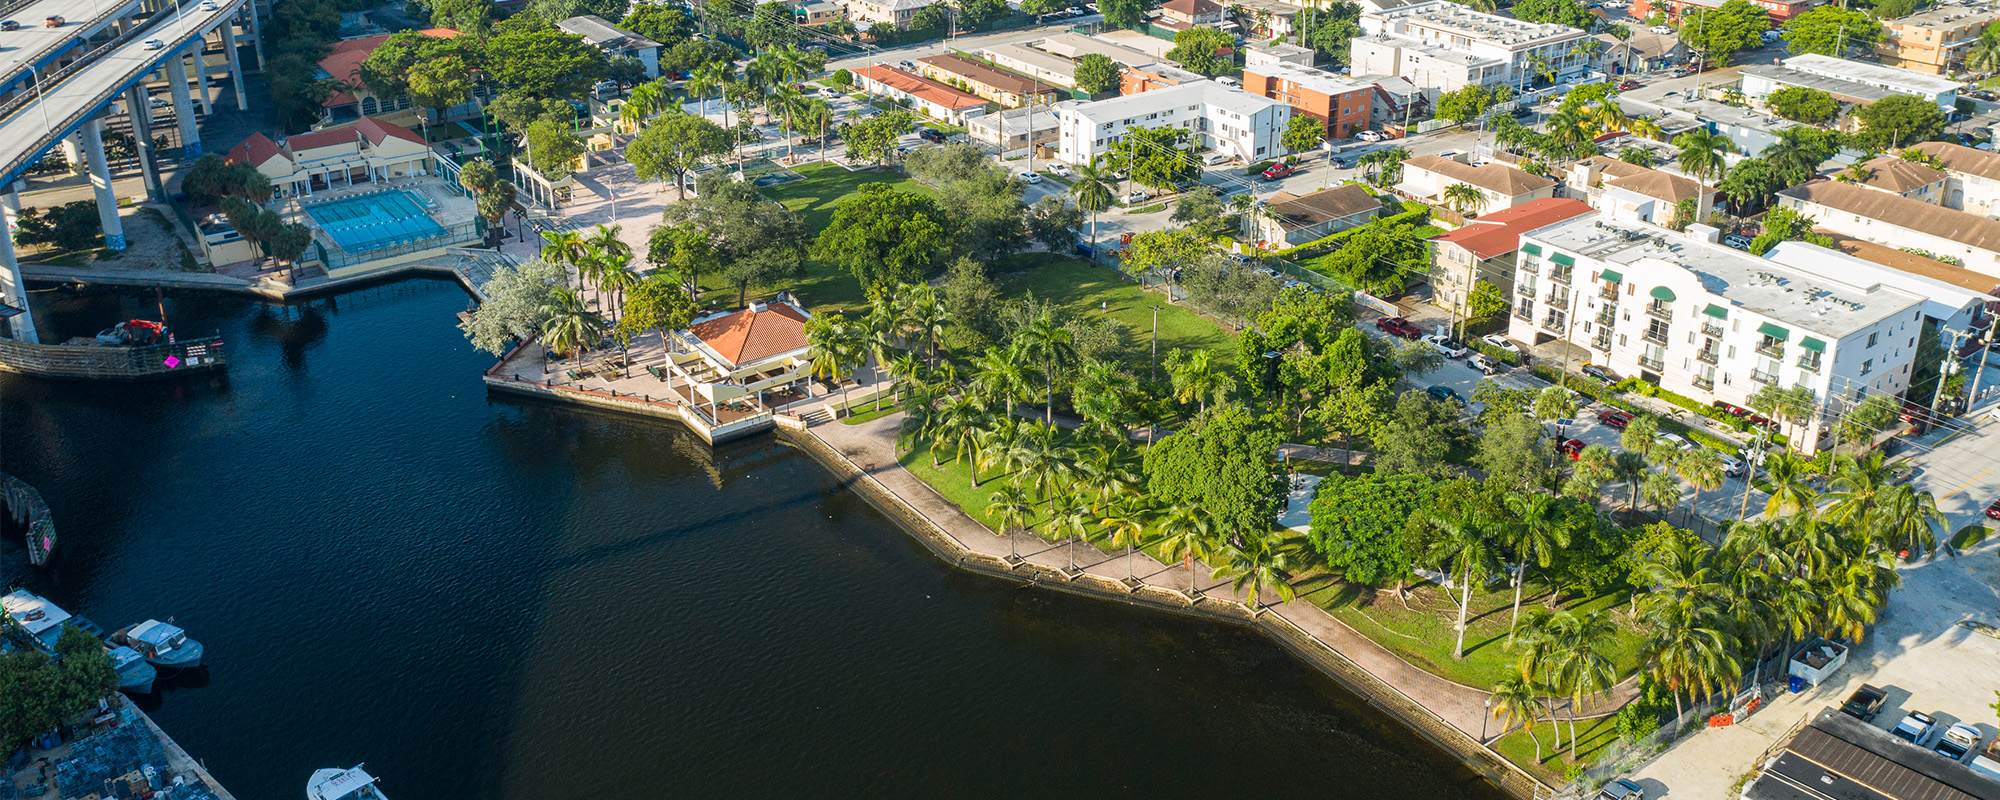 Jose Marti Park Adaptive Redesign